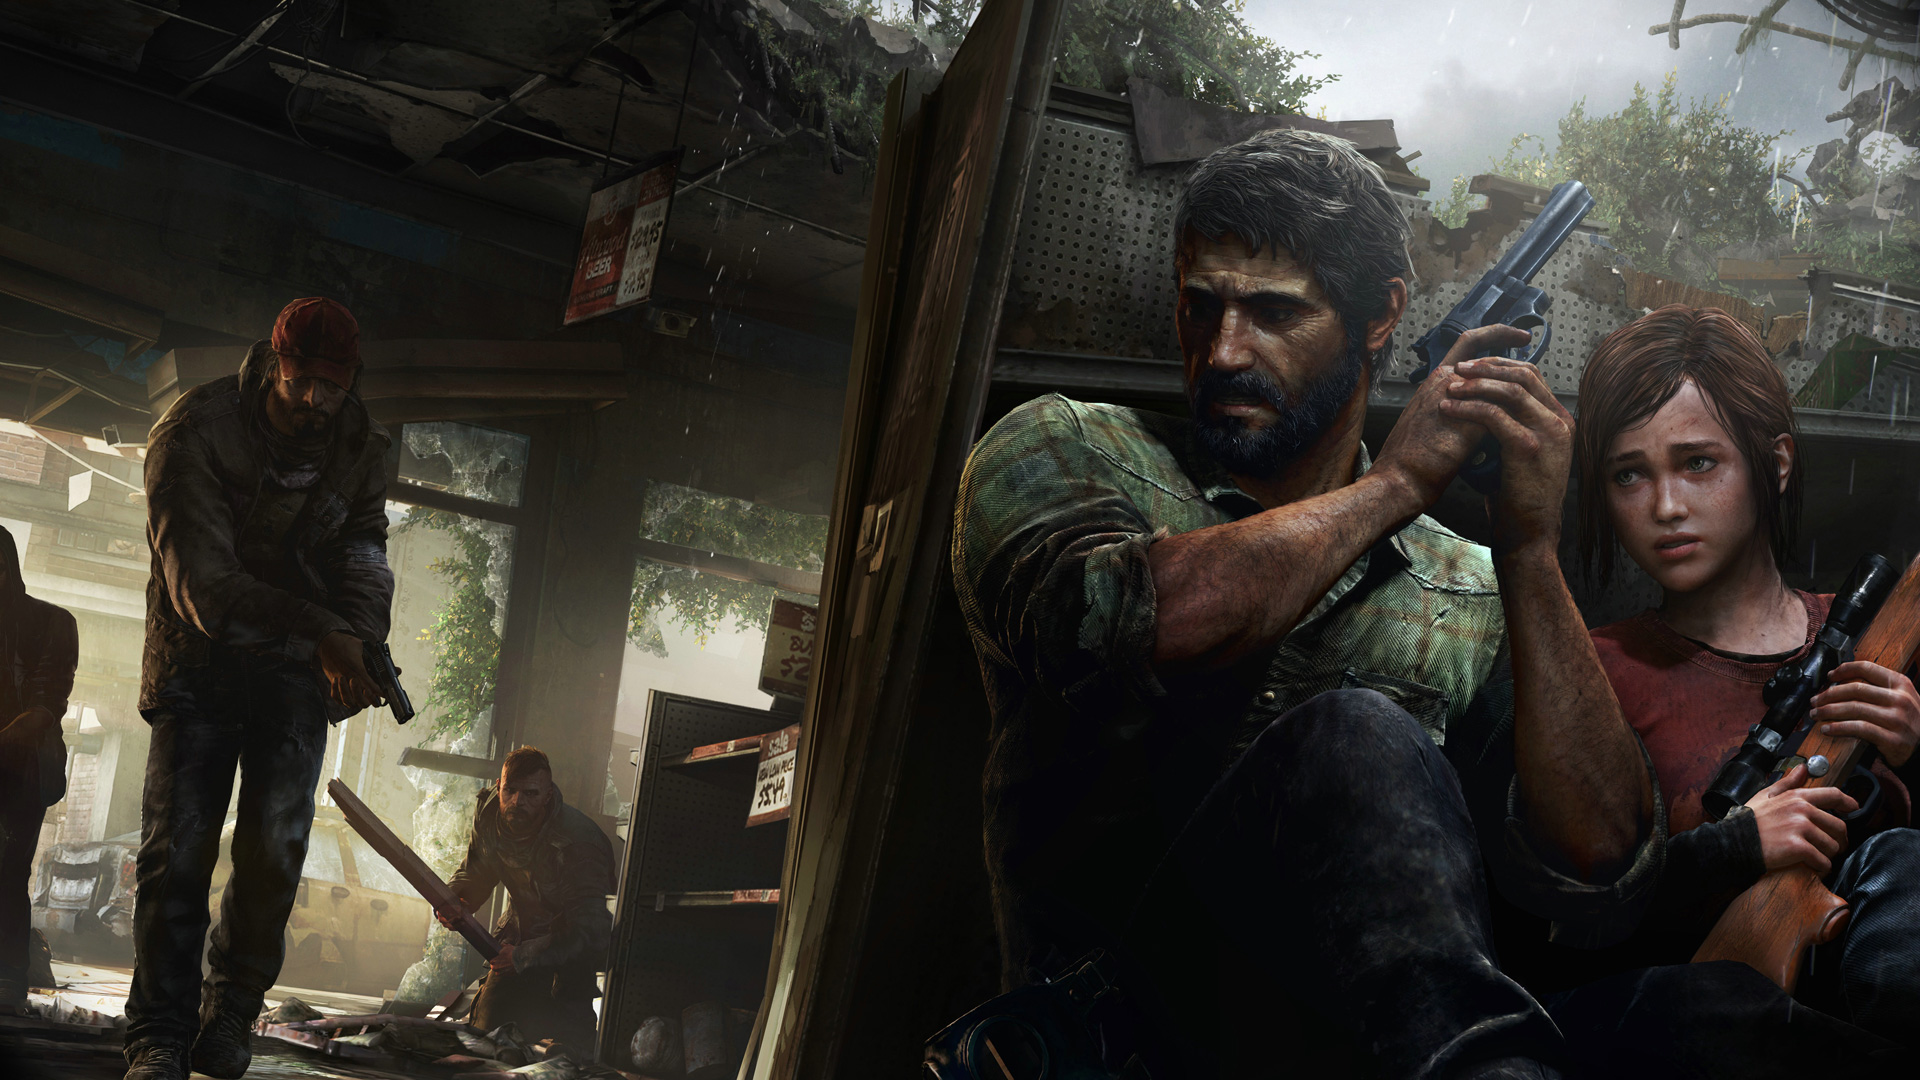 The Last of Us Wallpaper HD Page 3 1920x1080